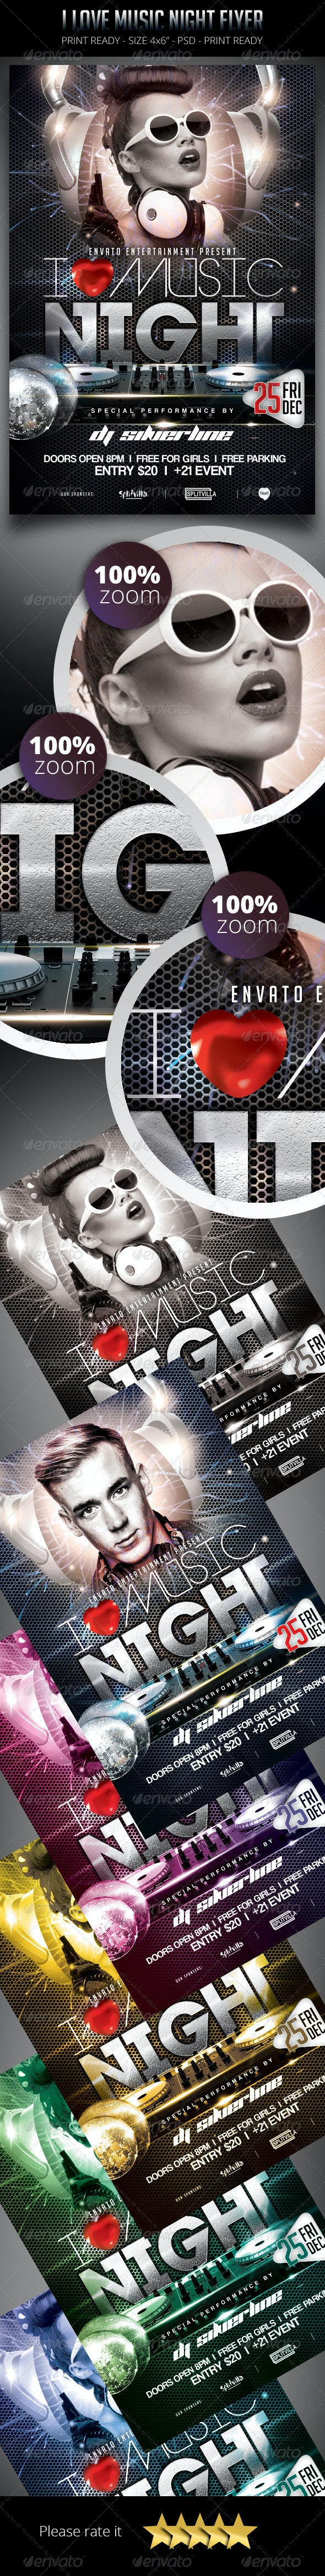 I Love Music Night Flyer - Clubs & Parties Events